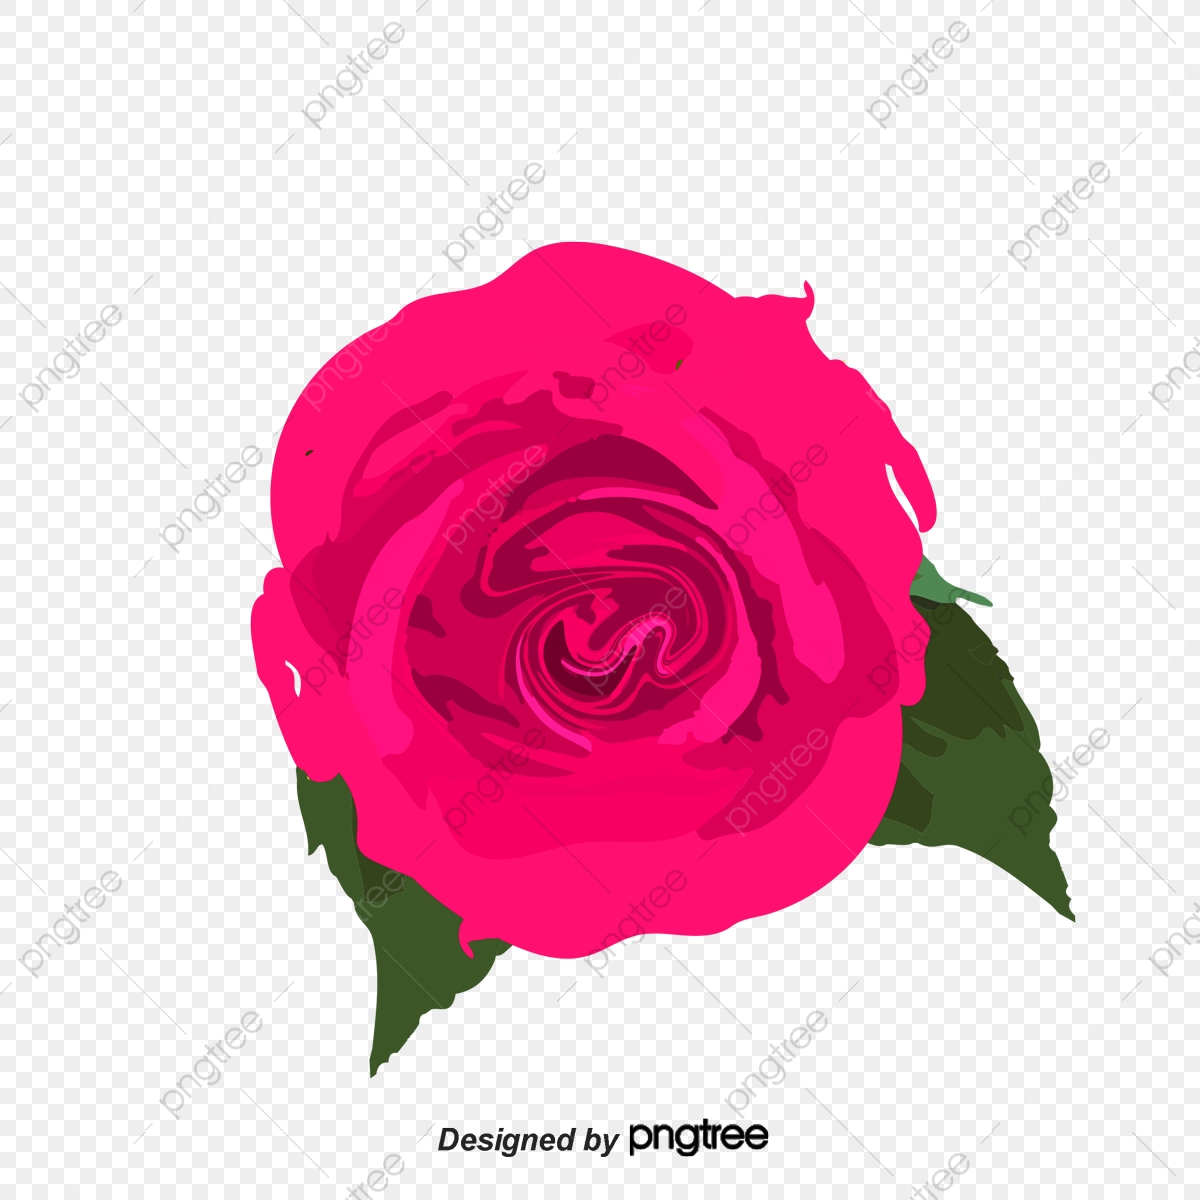 3d Rose 3d Rose Flower Png Transparent Clipart Image And Psd File For Free Download